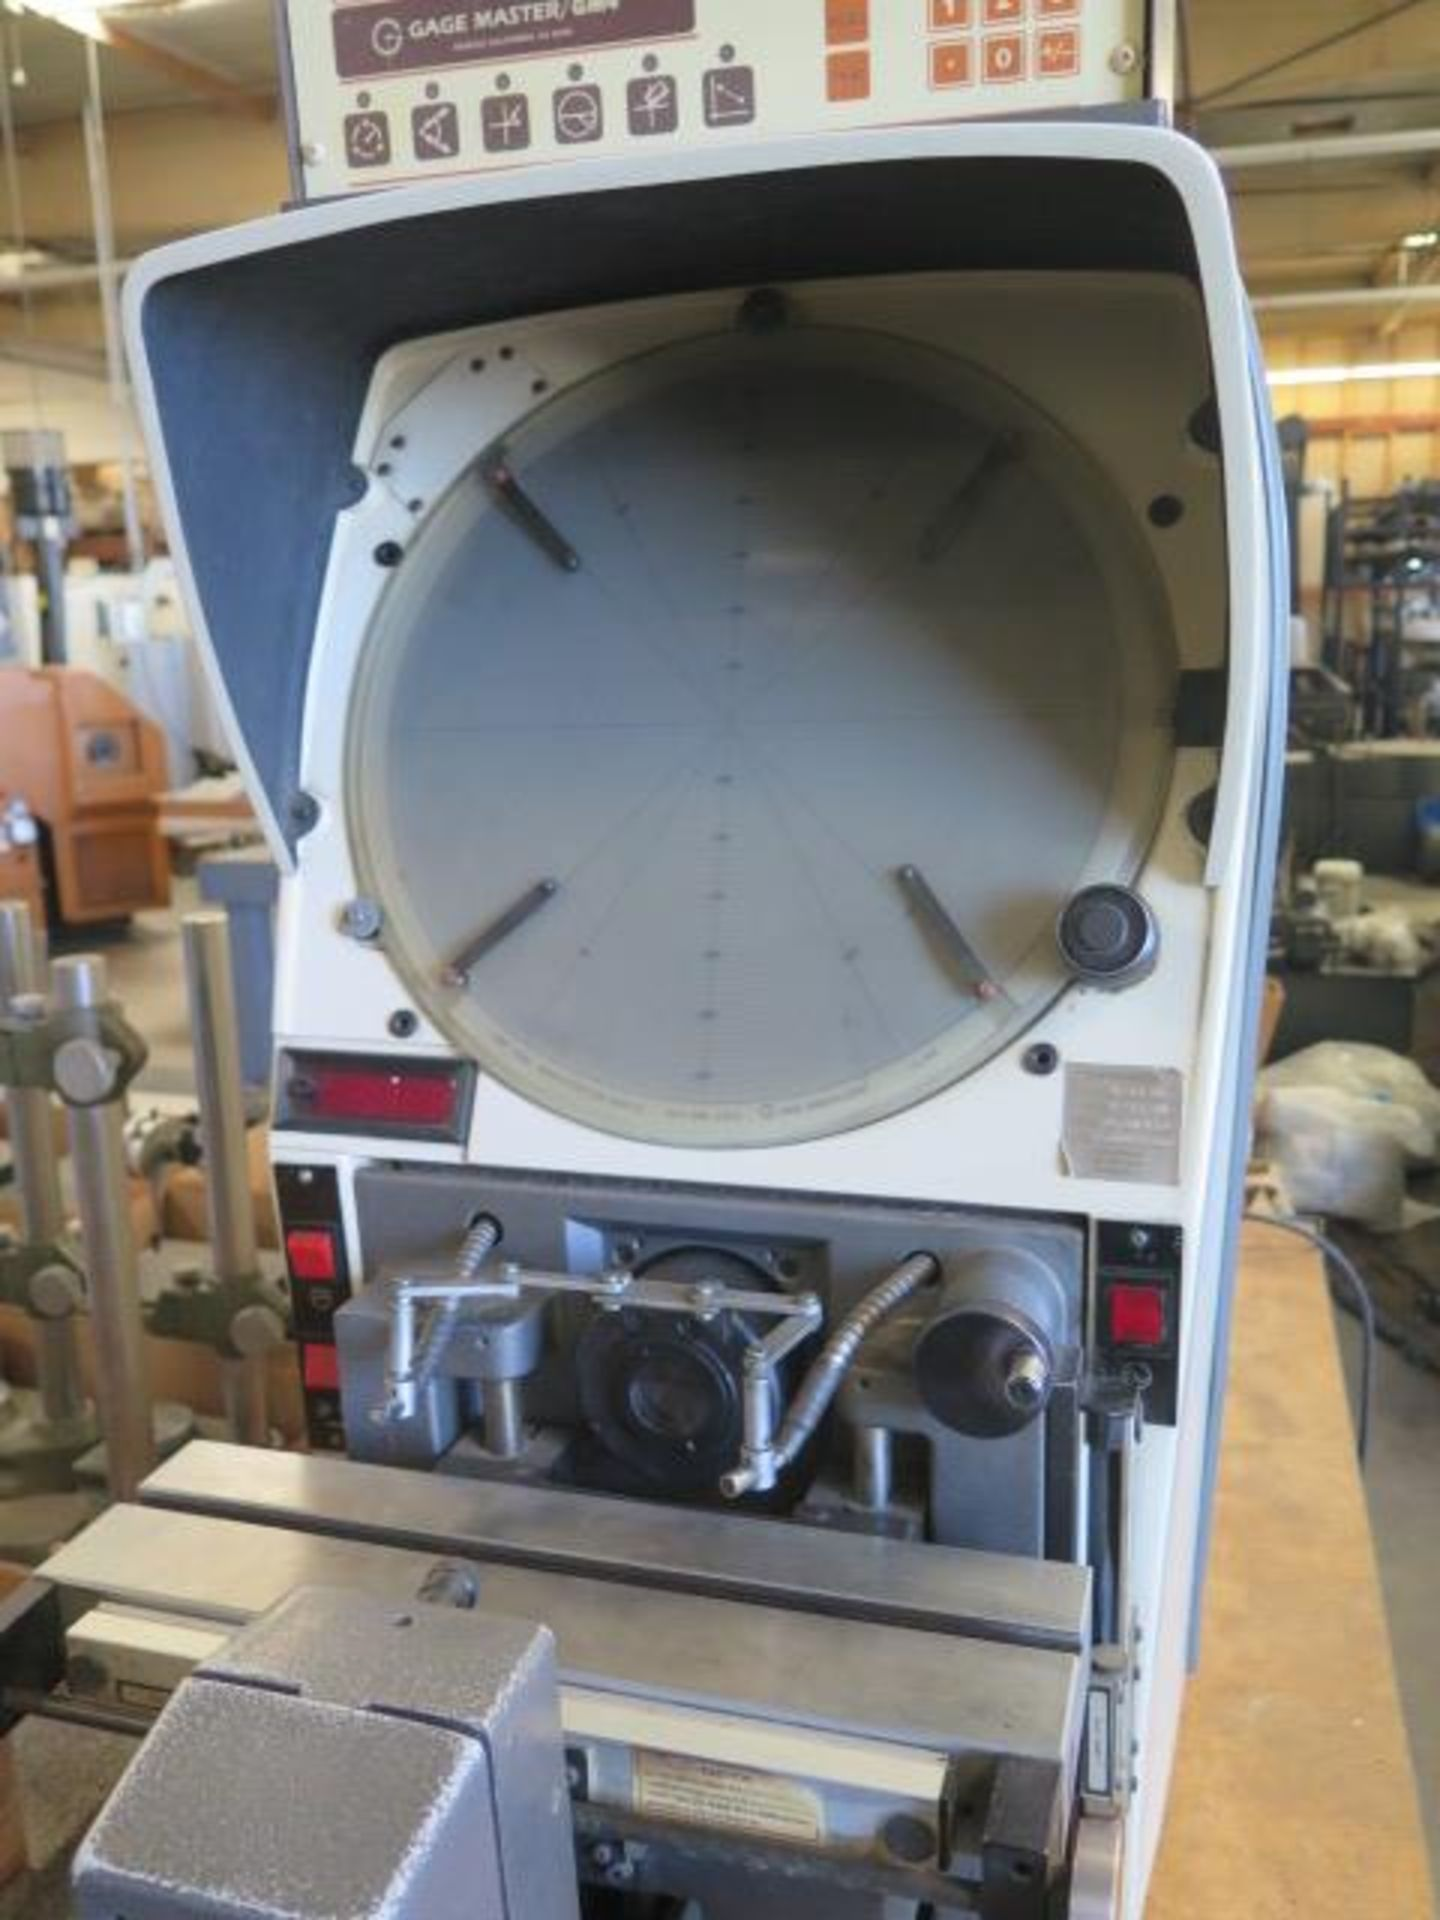 """Gage Master Series 20 13"""" Optical Comparator w/ Gage Master GM4 DRO, Dig Angular Readout, SOLD AS IS - Image 4 of 10"""